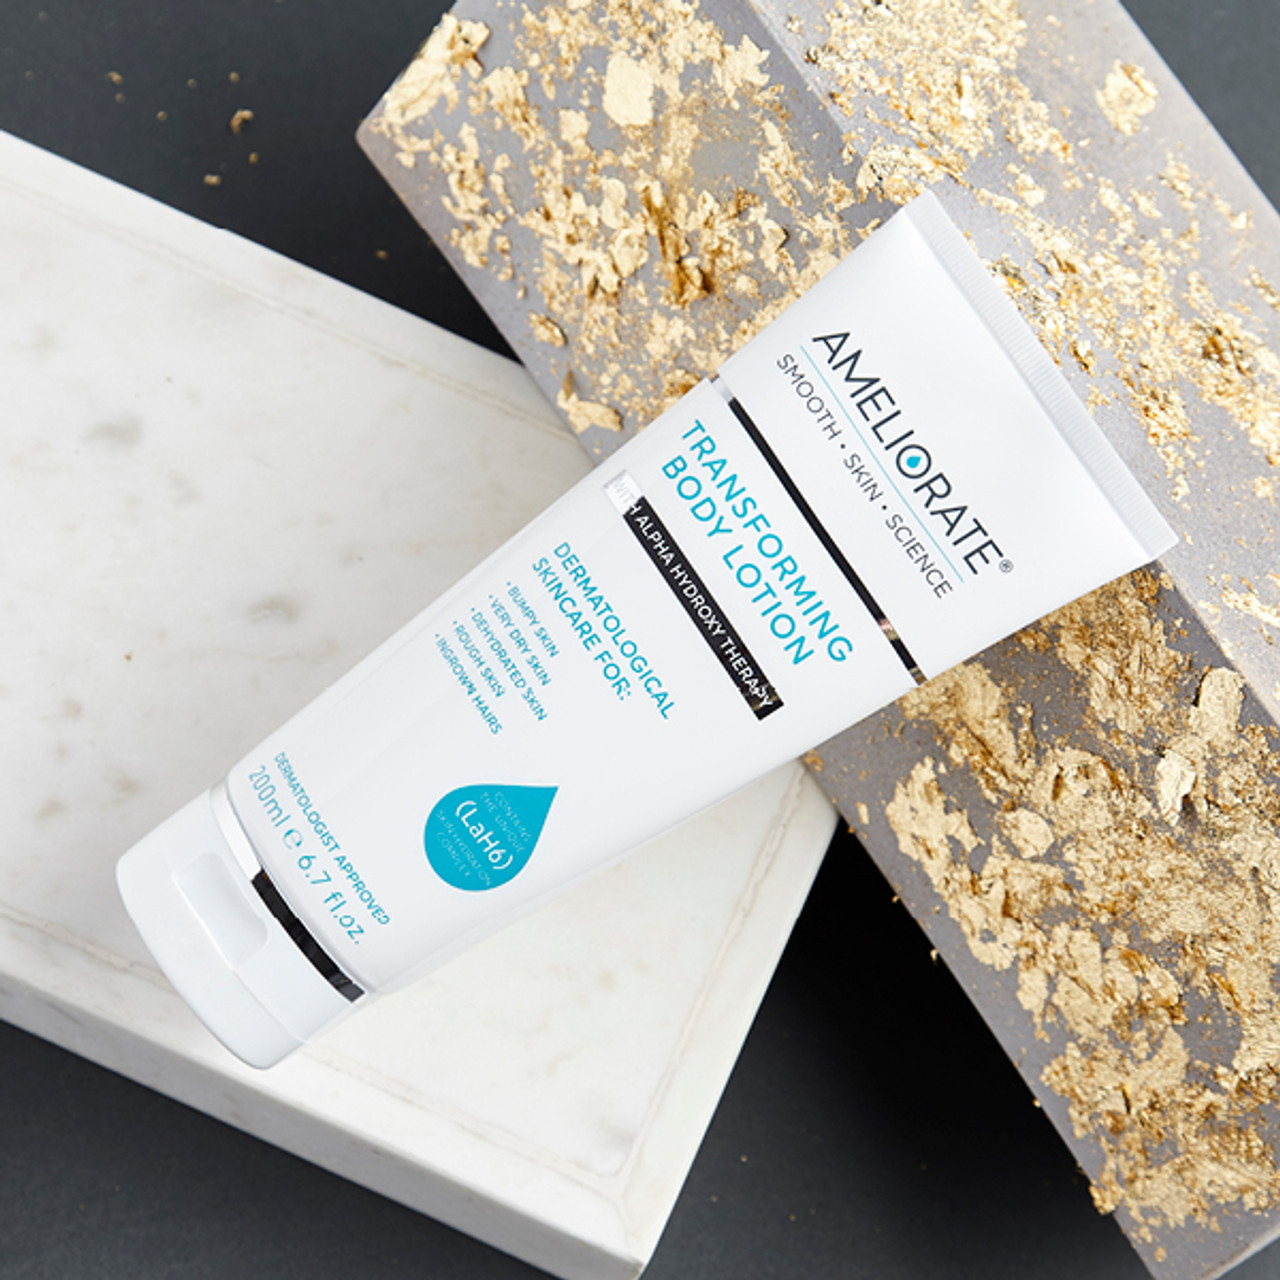 Wellbeing > SOS Products | Bath & Unwind | Official Stockist